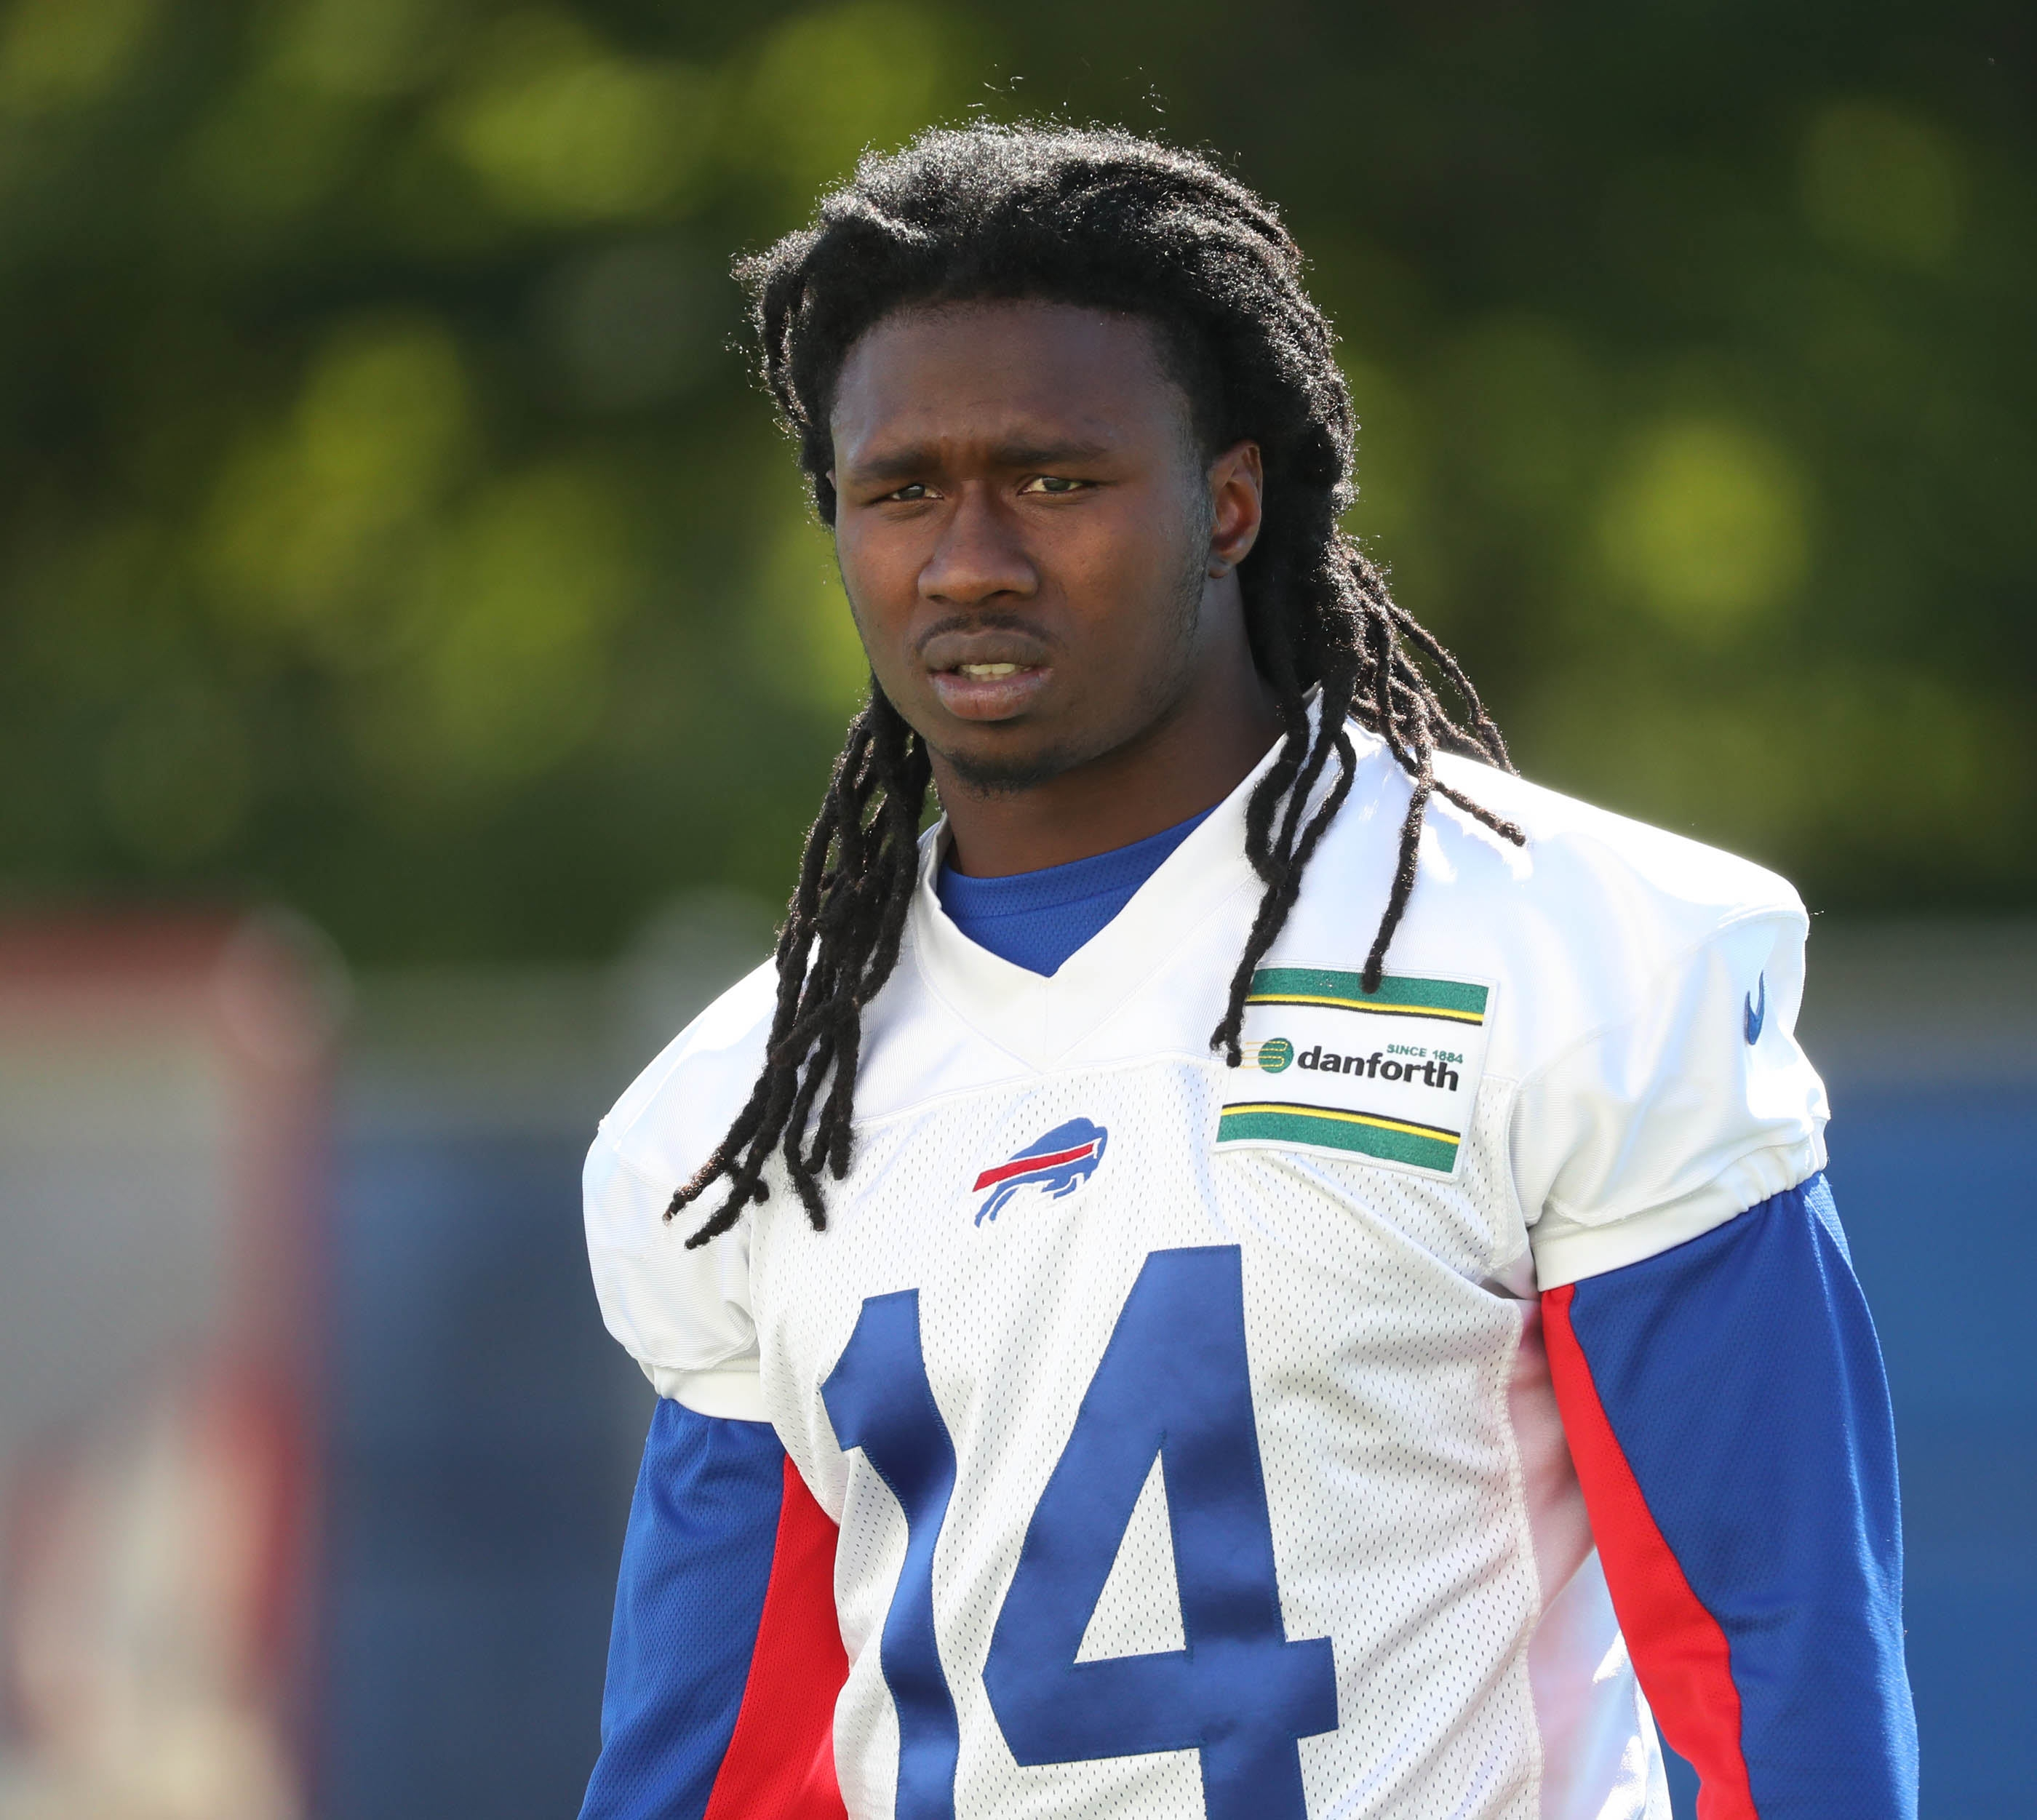 Buffalo Bills wide receiver Sammy Watkins. (James P. McCoy/ Buffalo News)